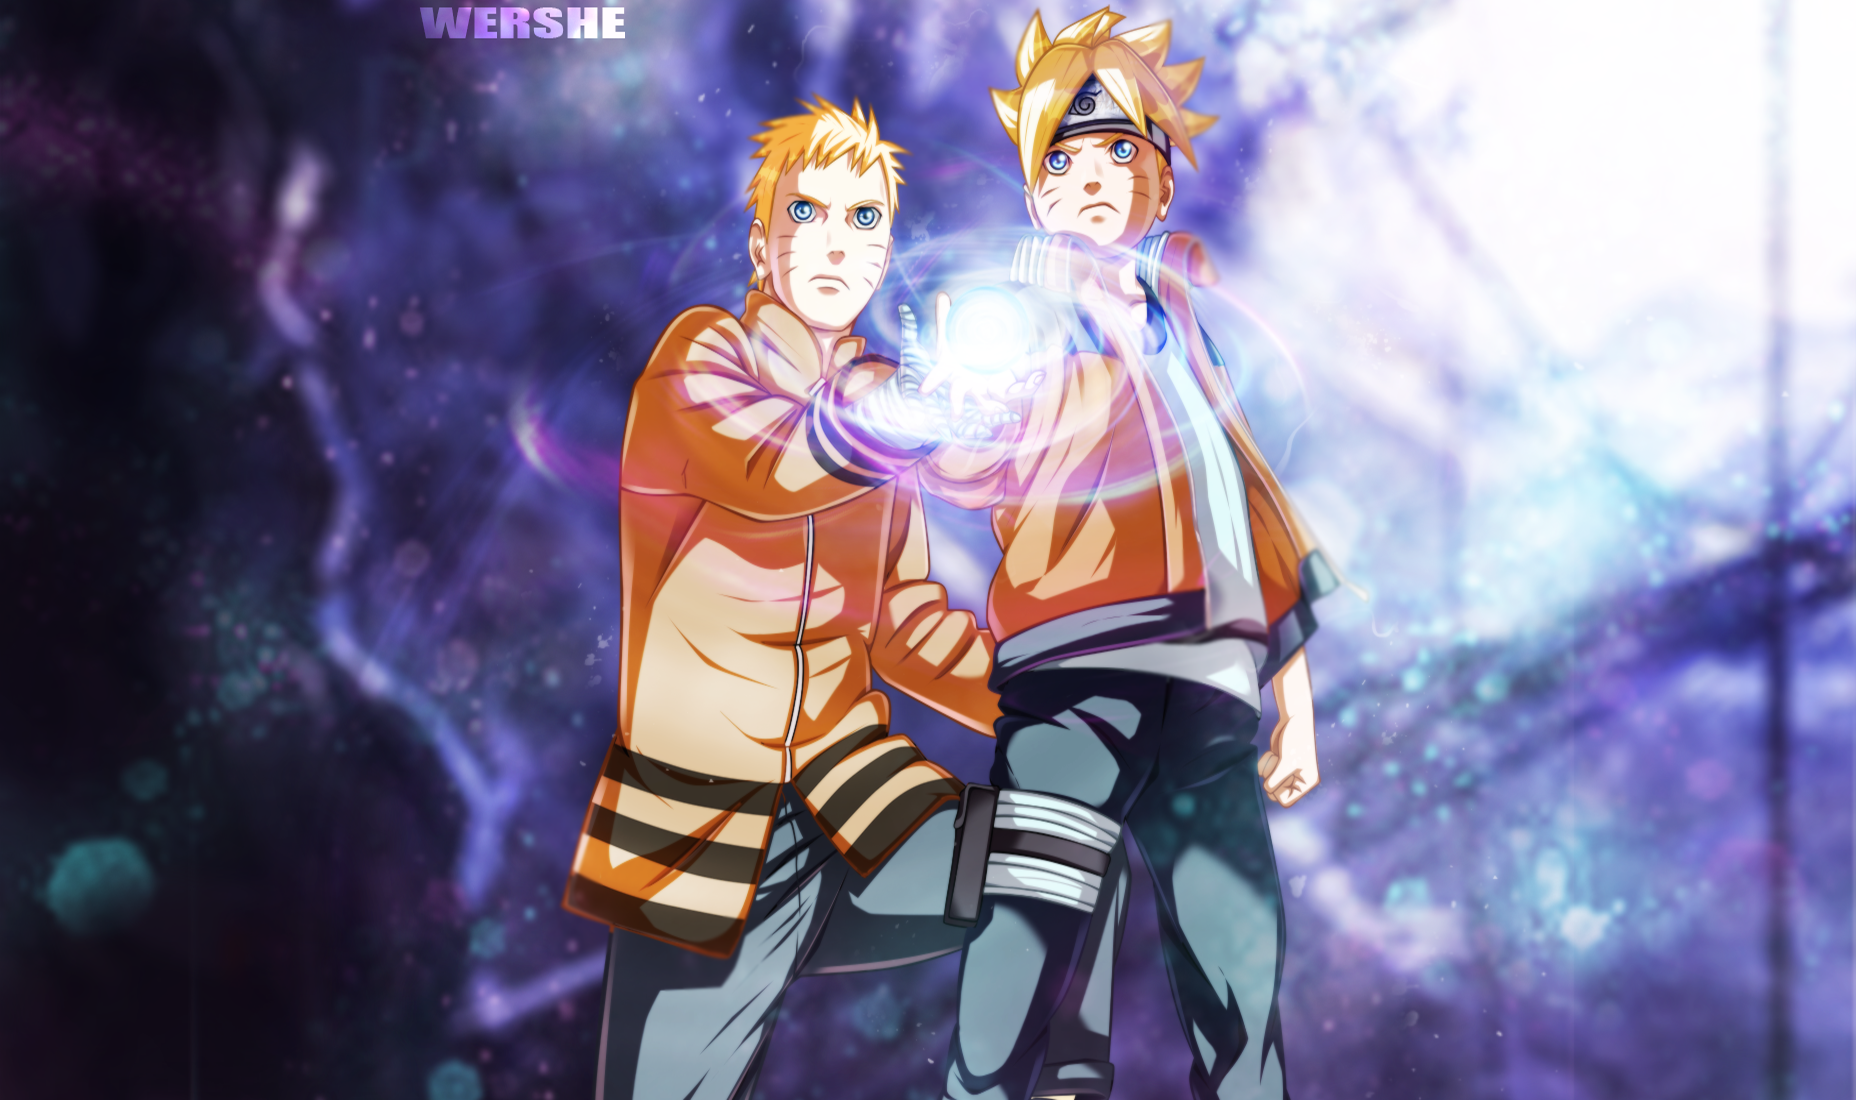 Naruto and his son Boruto Papel de Parede and Planos de Fundo  1856x1100  ID:650013